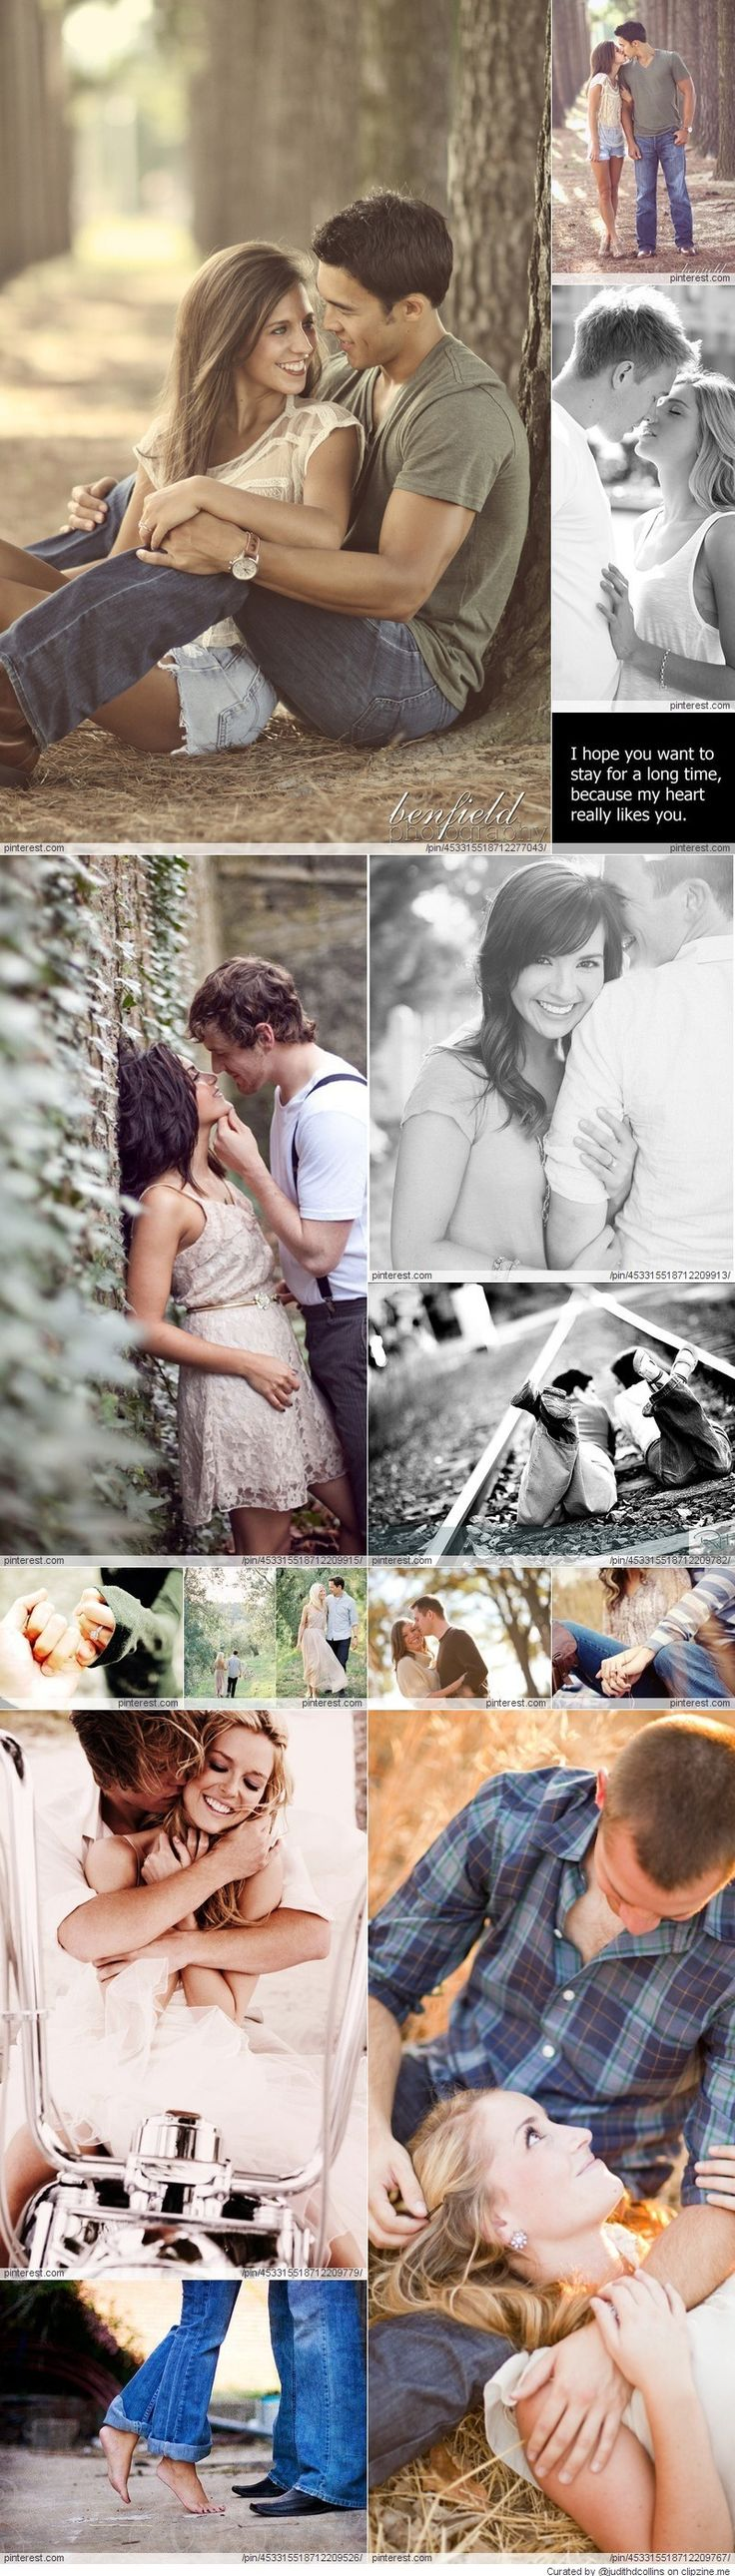 Engagement Photography:soooo cute @brianderson467 these are some great outfit…